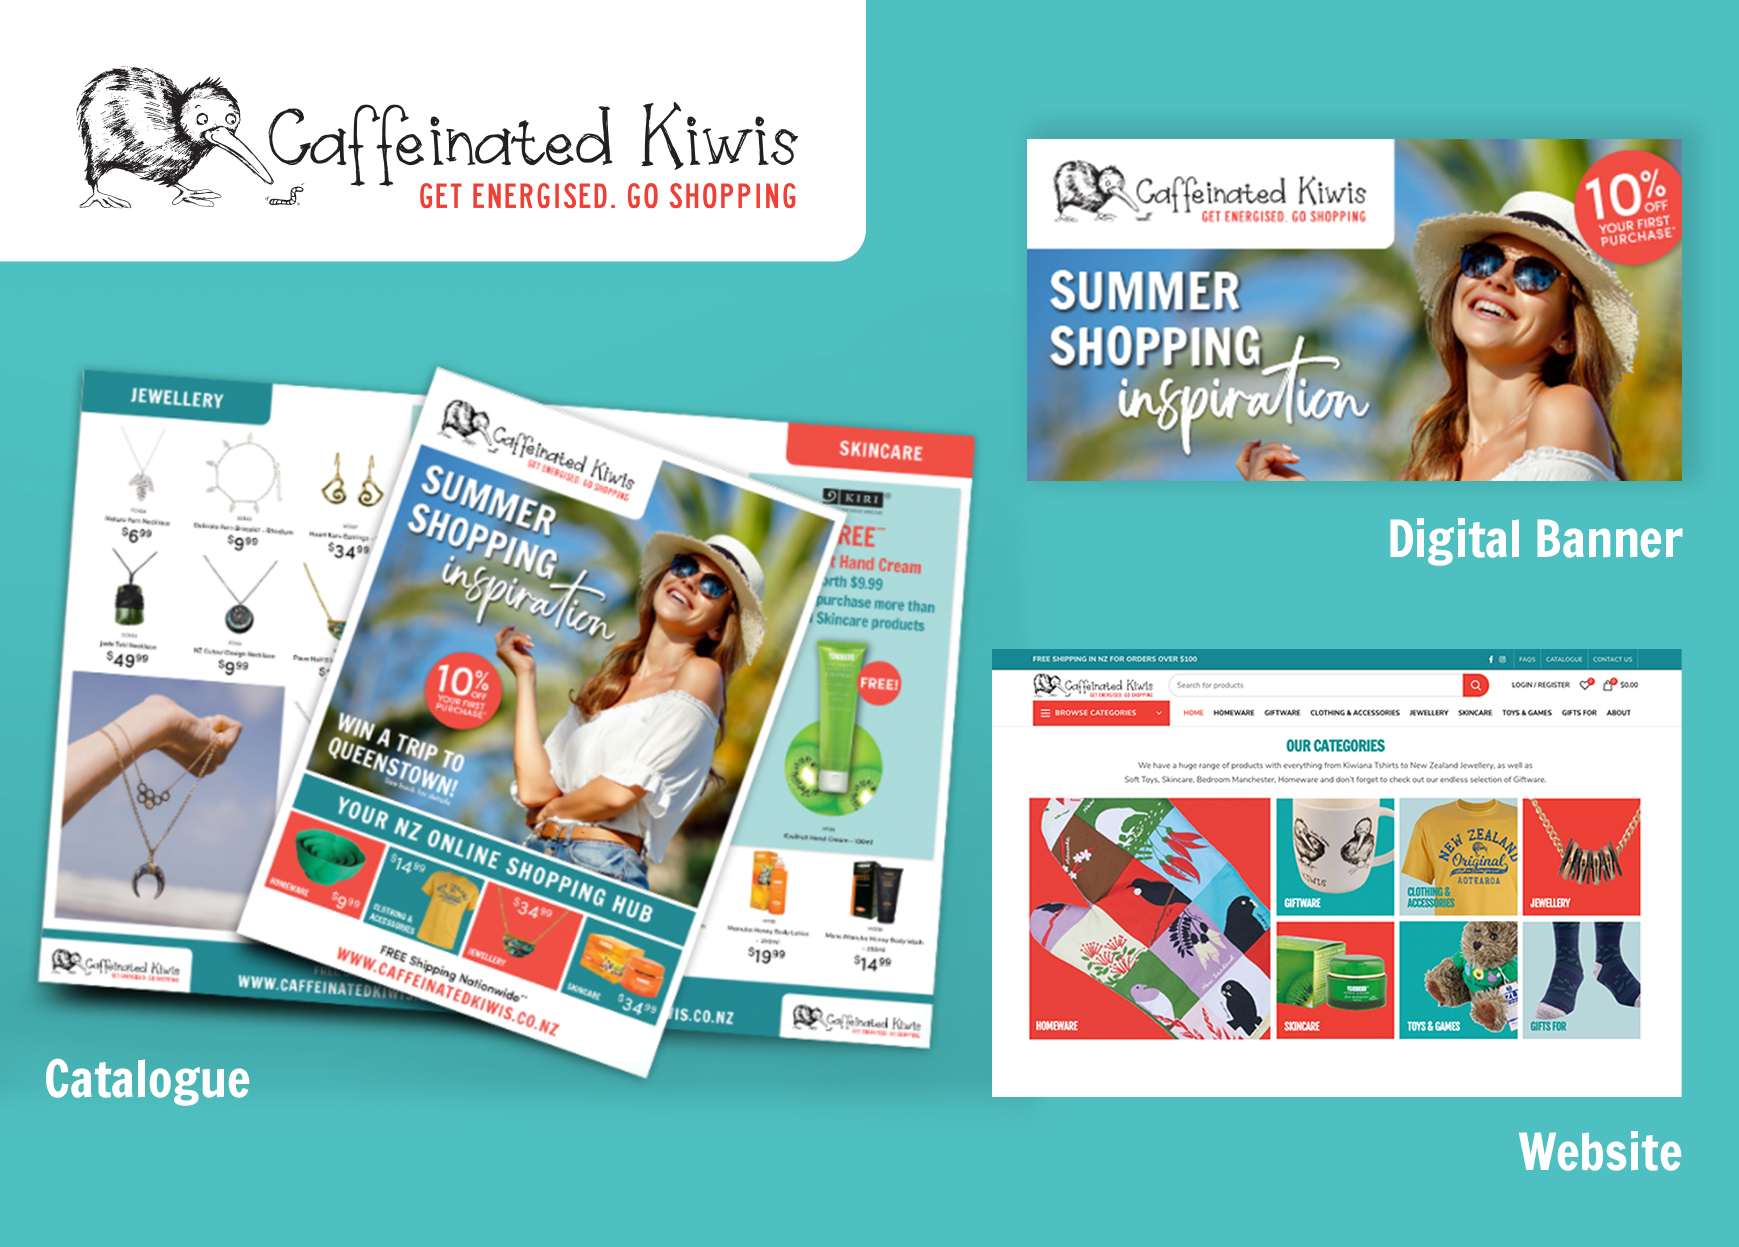 WE JUST LAUNCHED THIS NEW BRAND AND ECOMMERCE WEBSITE CAFFEINATED KIWIS TO THE WORLD!